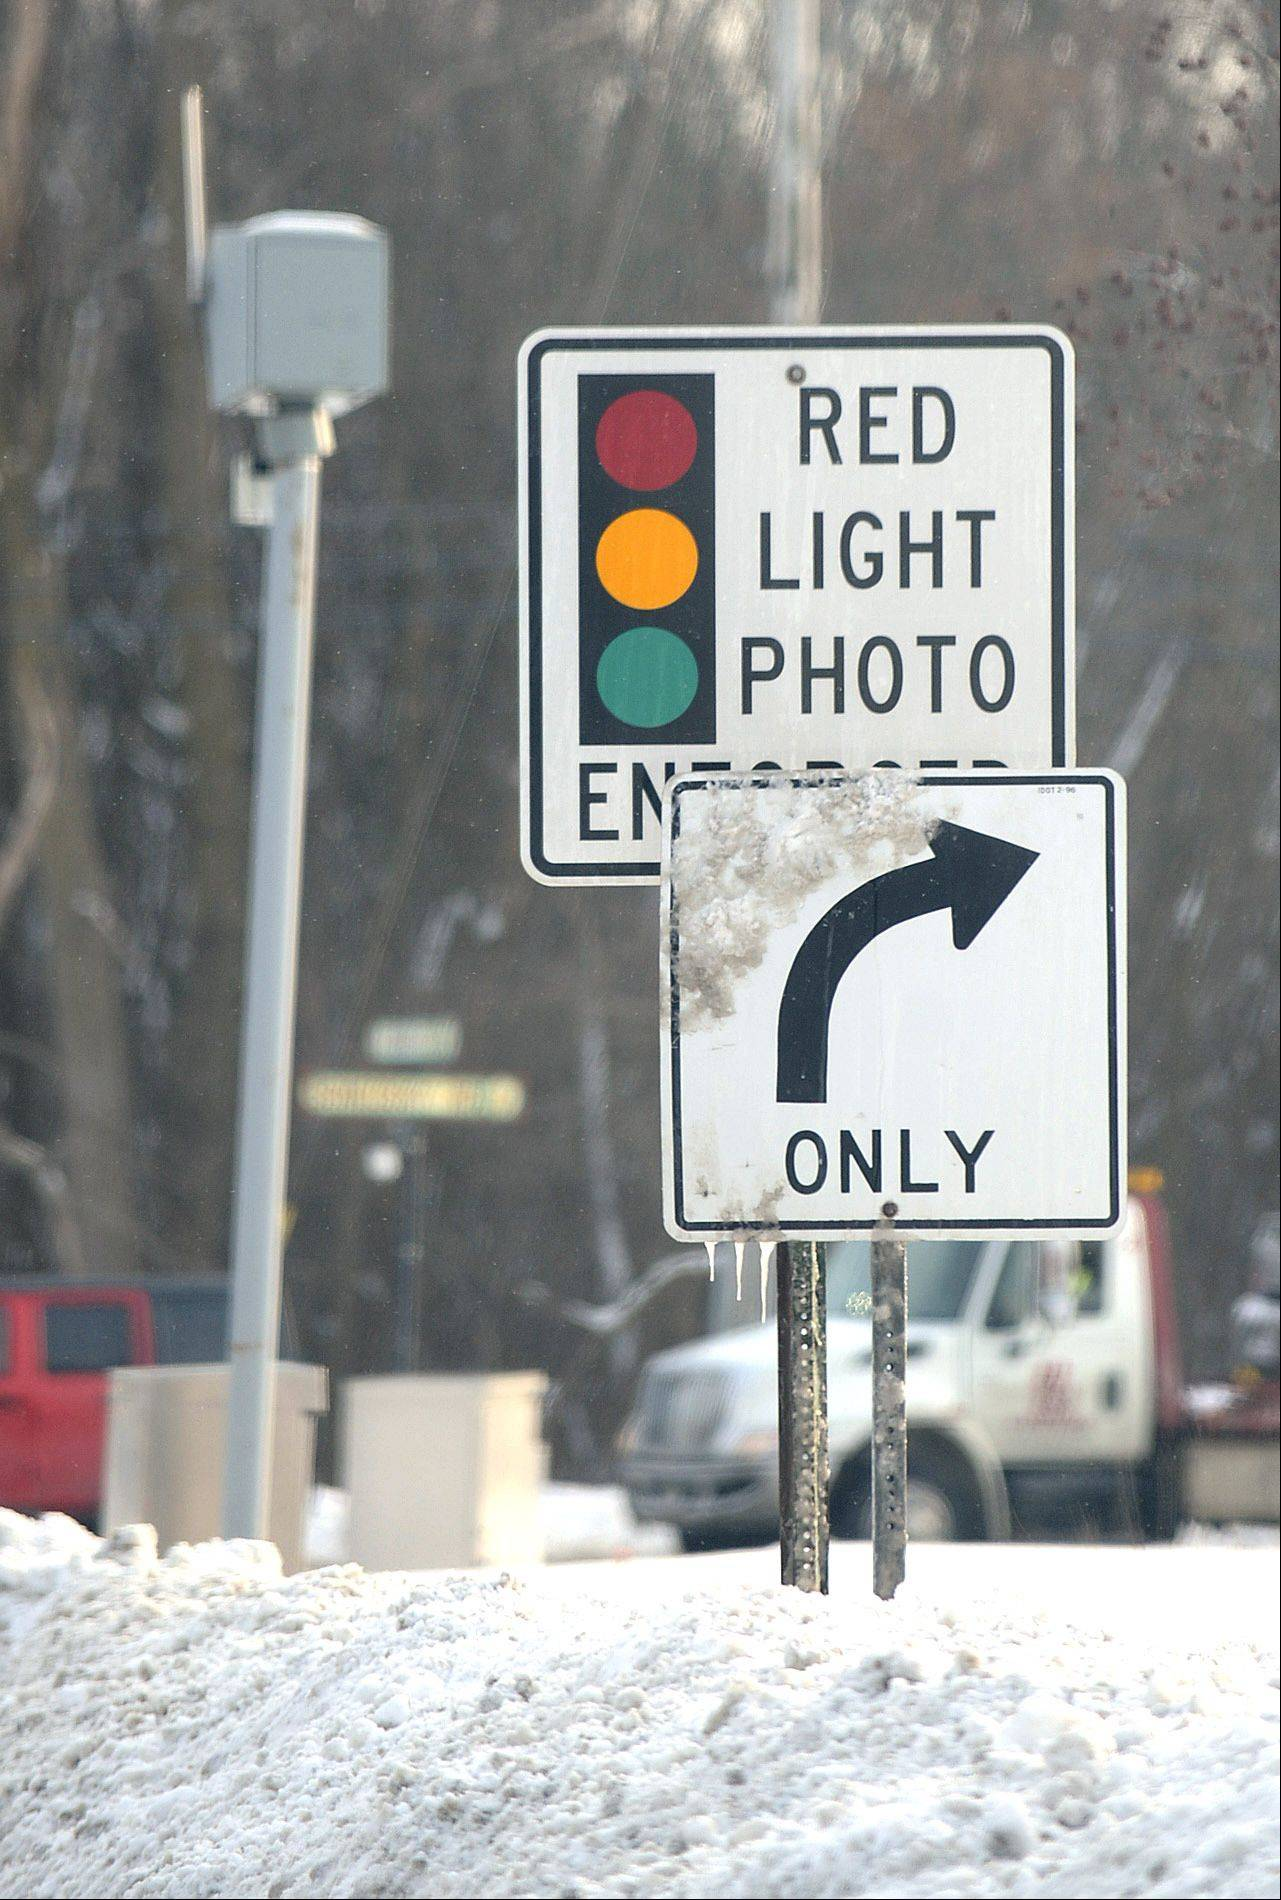 W. Dundee greenlights ongoing red light program